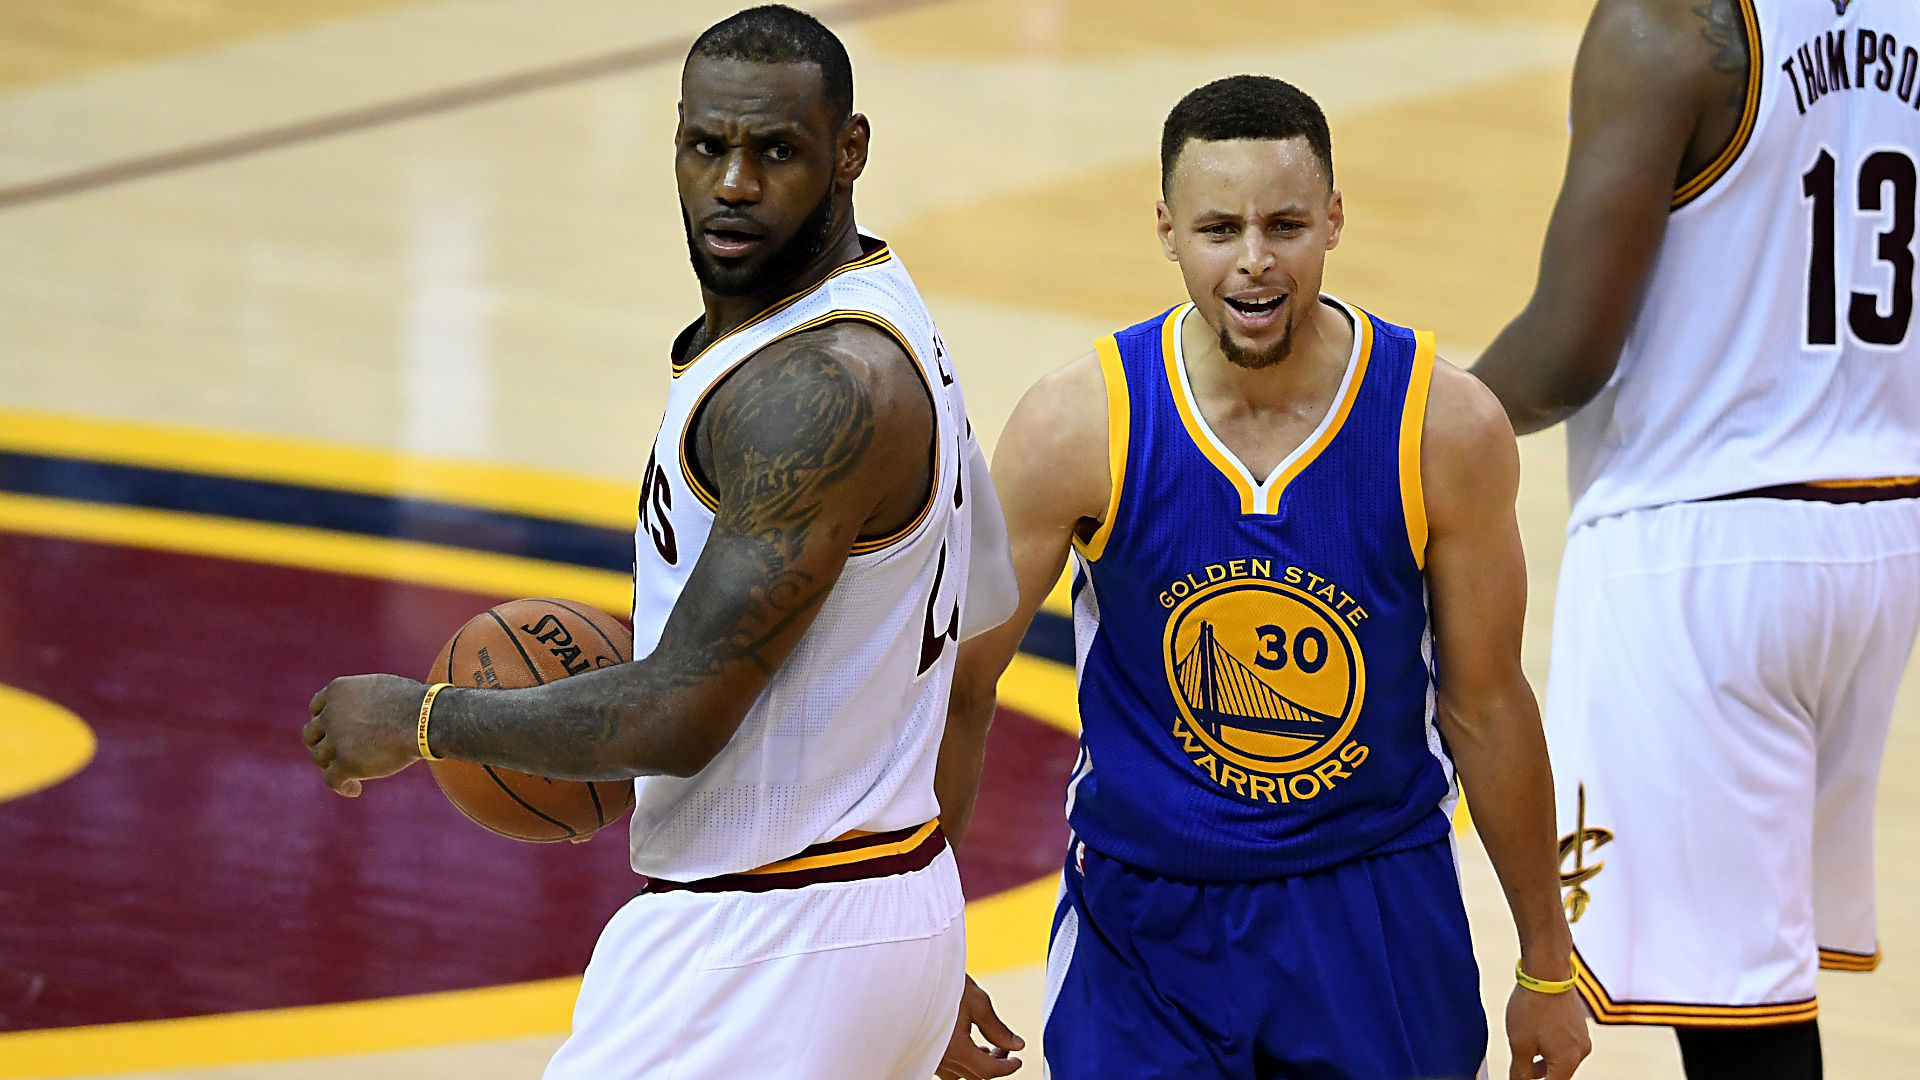 Frustrated Curry loses his cool as Warriors lose to Cavs